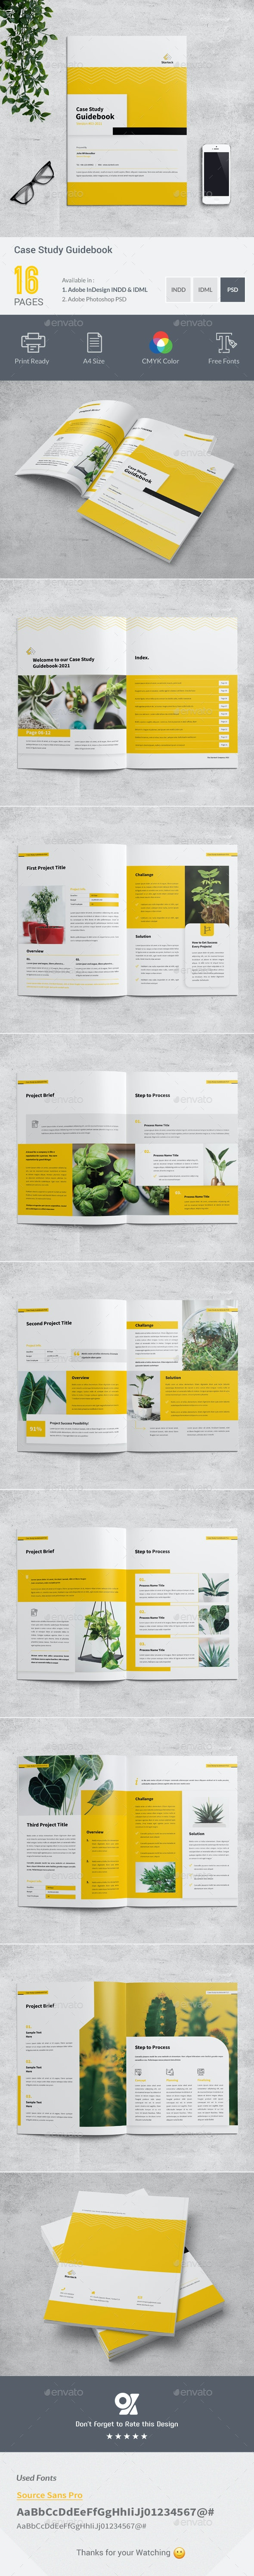 Case Study Guidebook - Informational Brochures